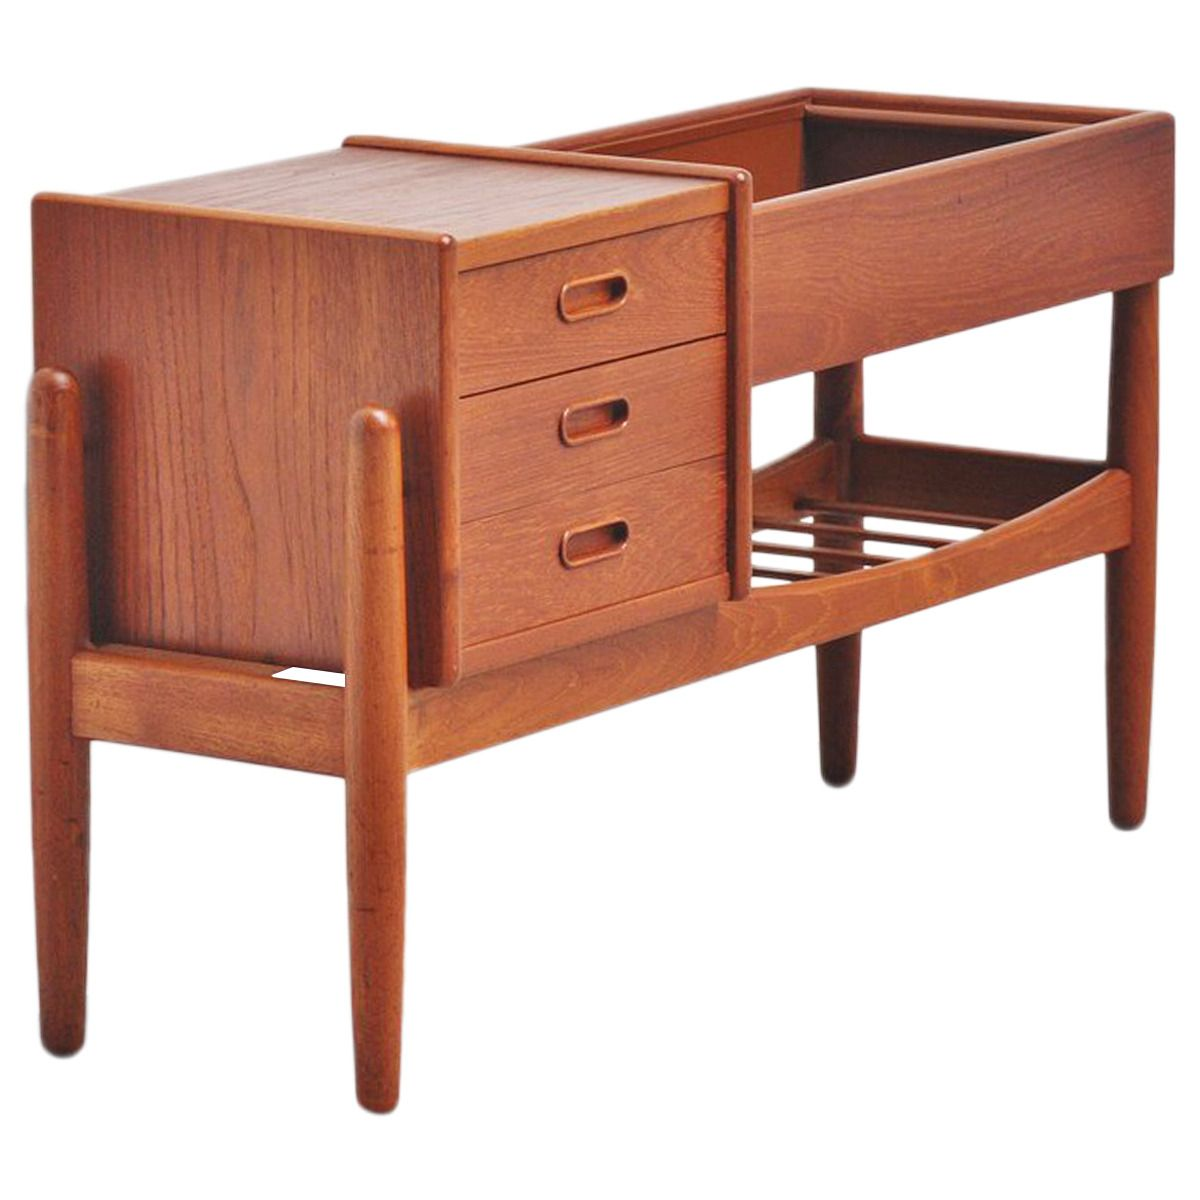 Arne Wahl Iversen during the 1950s, and manufactured in Denmark by Vamo